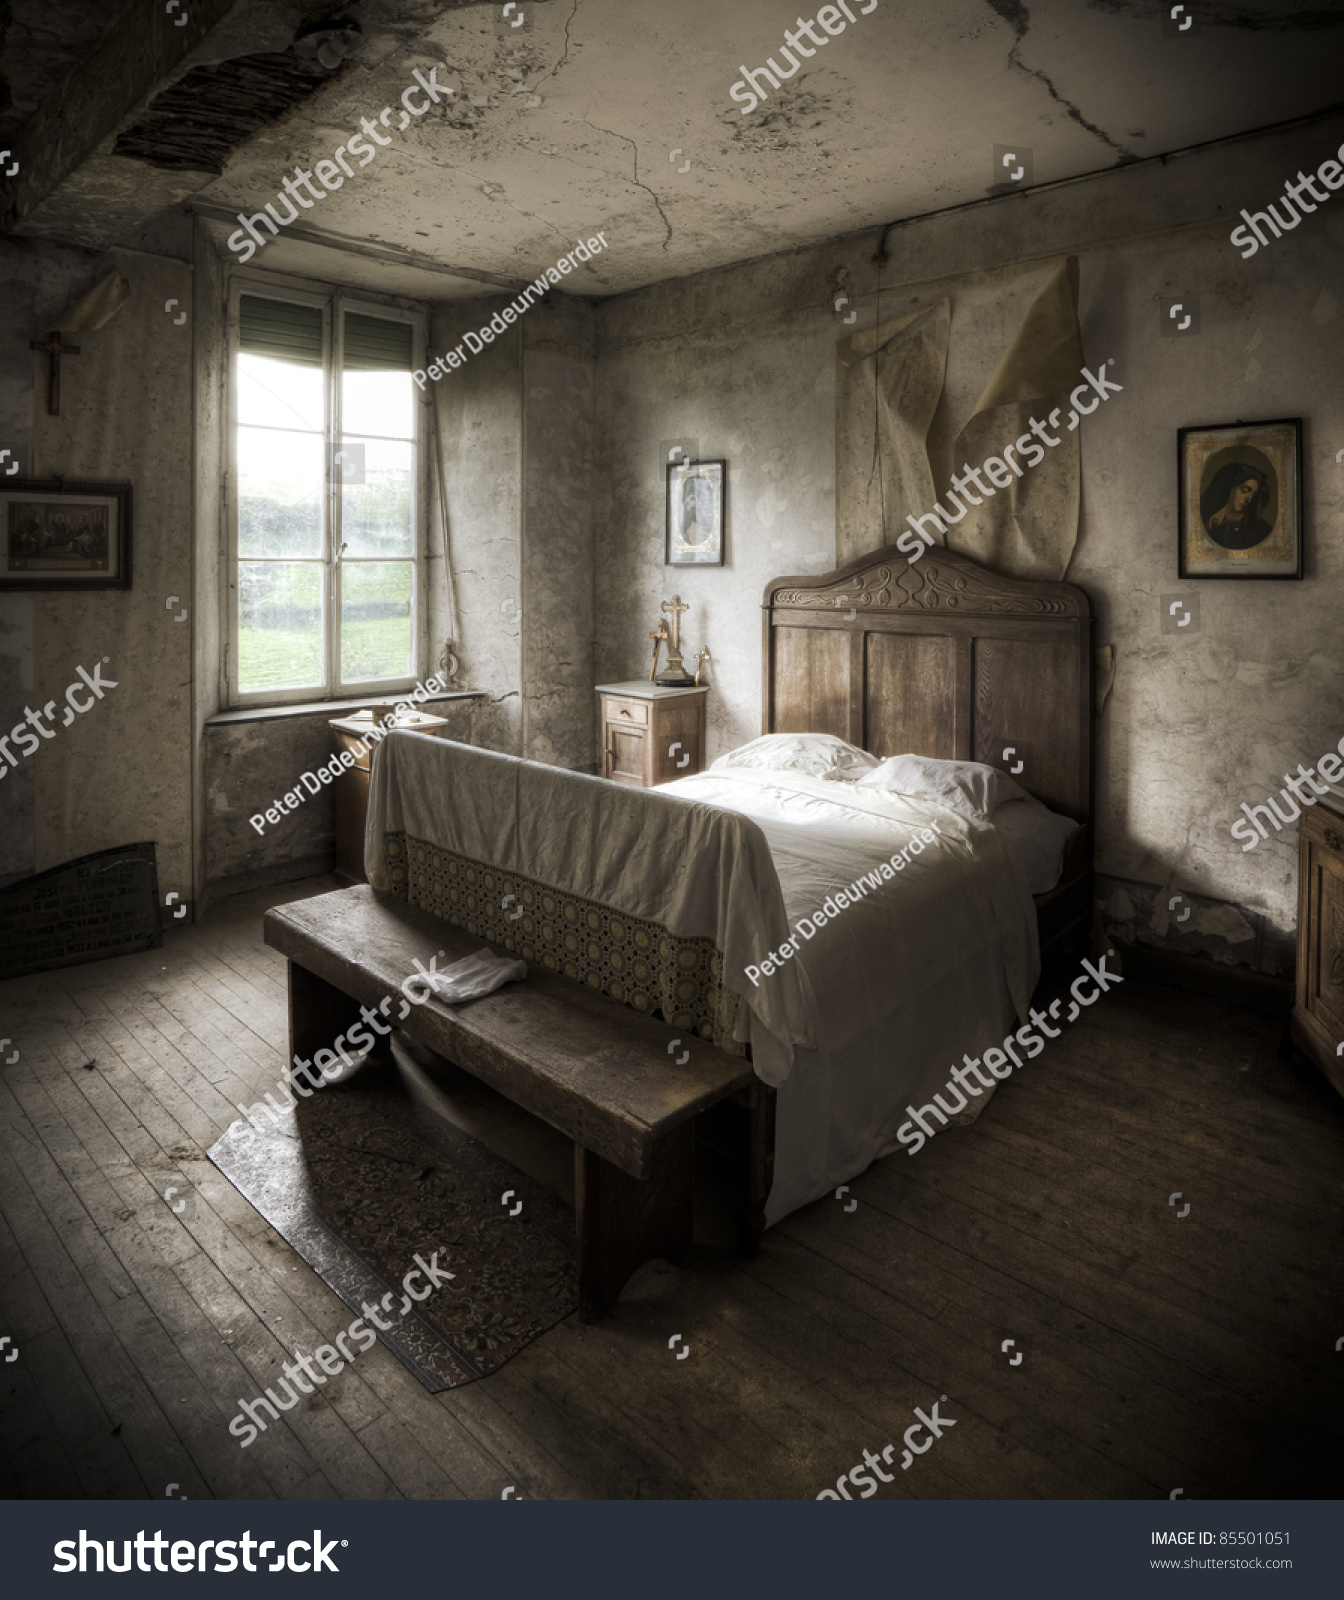 Creepy Bedroom Scenery Cracked Walls Wooden Stock Photo